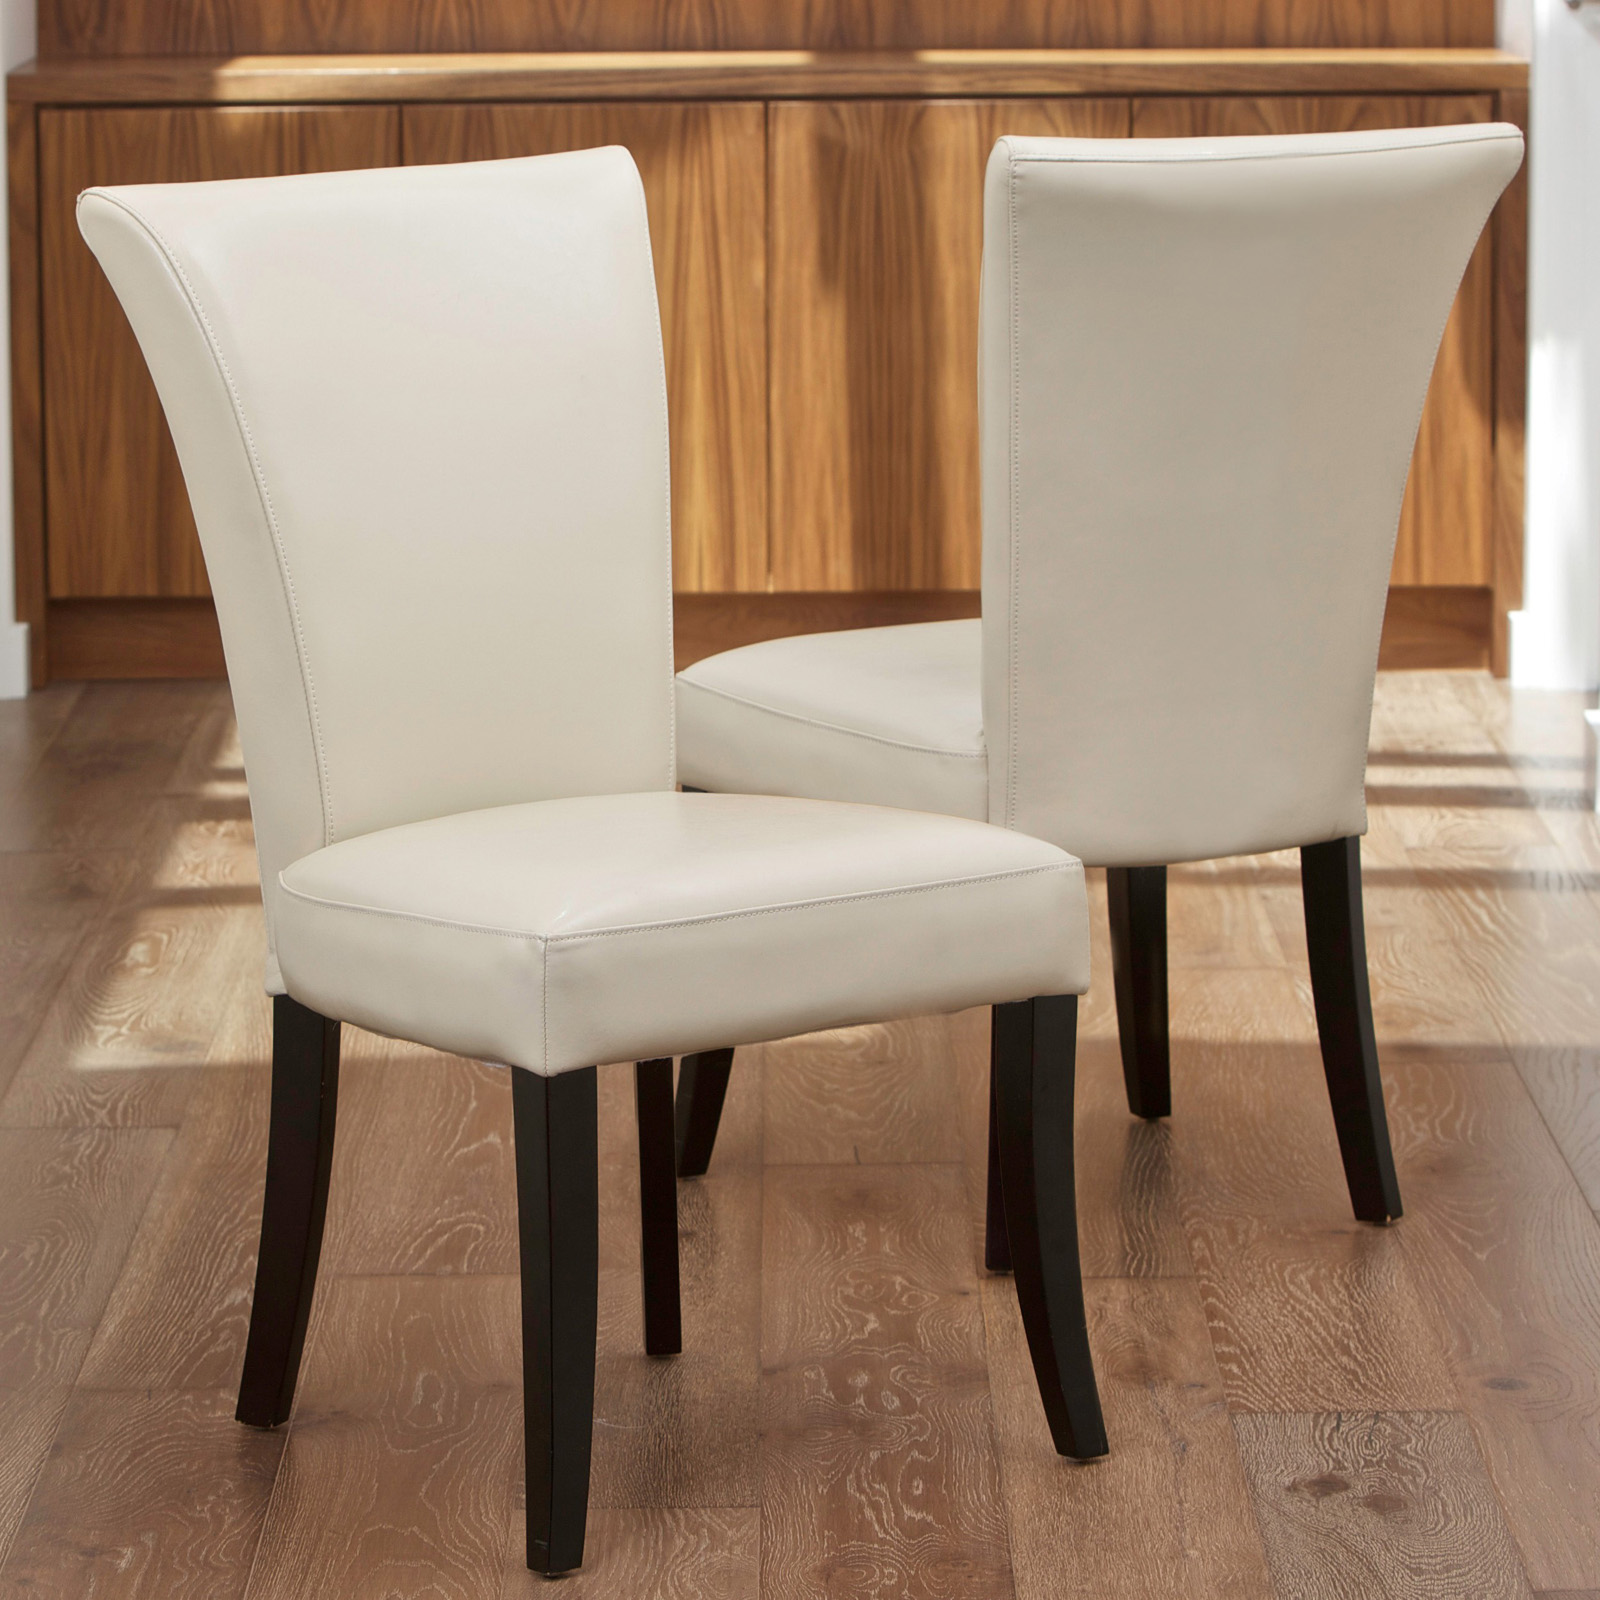 Ivory Dining Chairs Stanford Ivory Leather Dining Chairs 2 Pack Dining